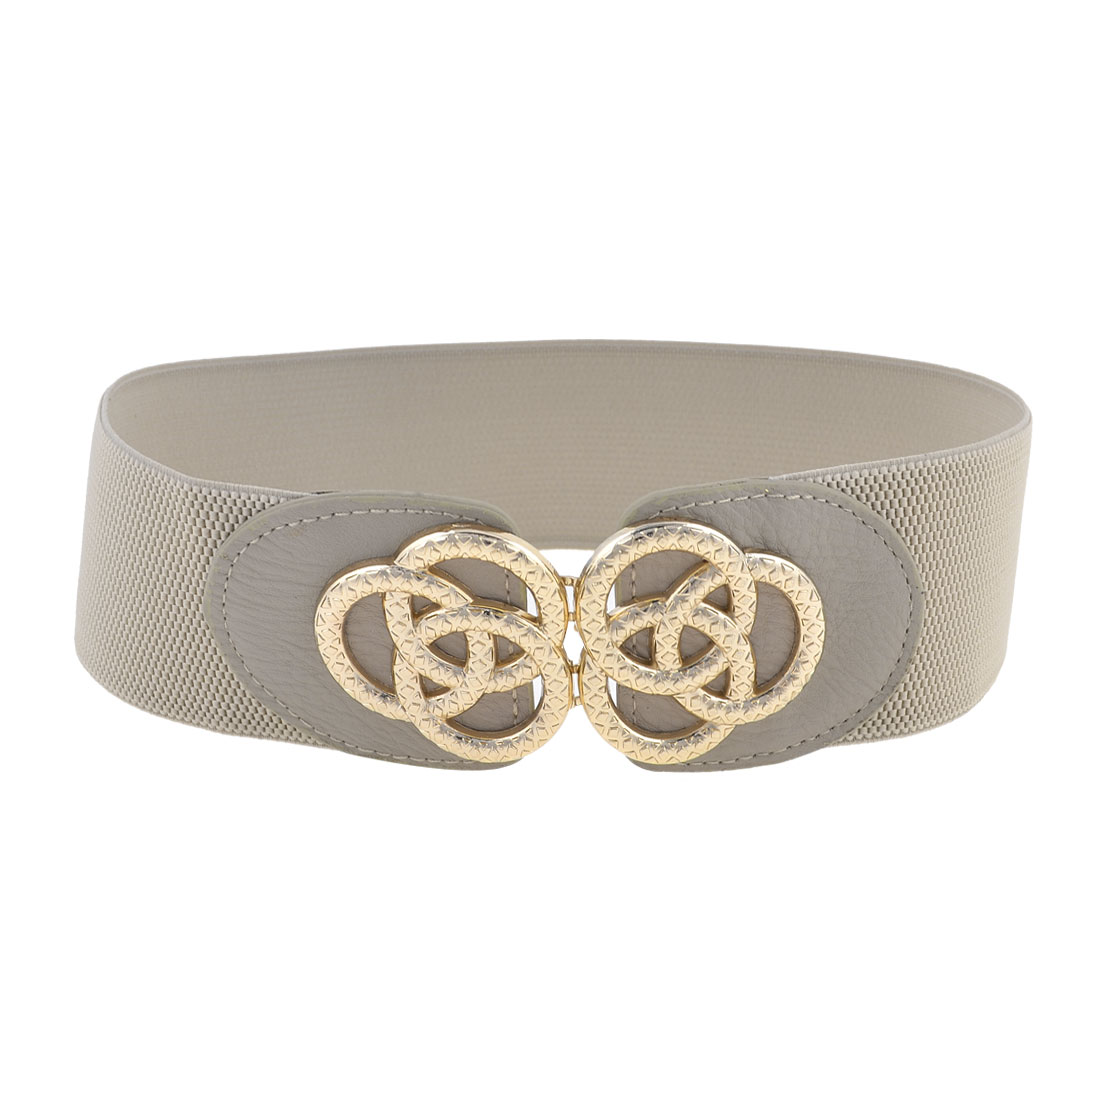 Ladies Rings Shape Metallic Buckle Gray Stretchy Cinch Waist Belt